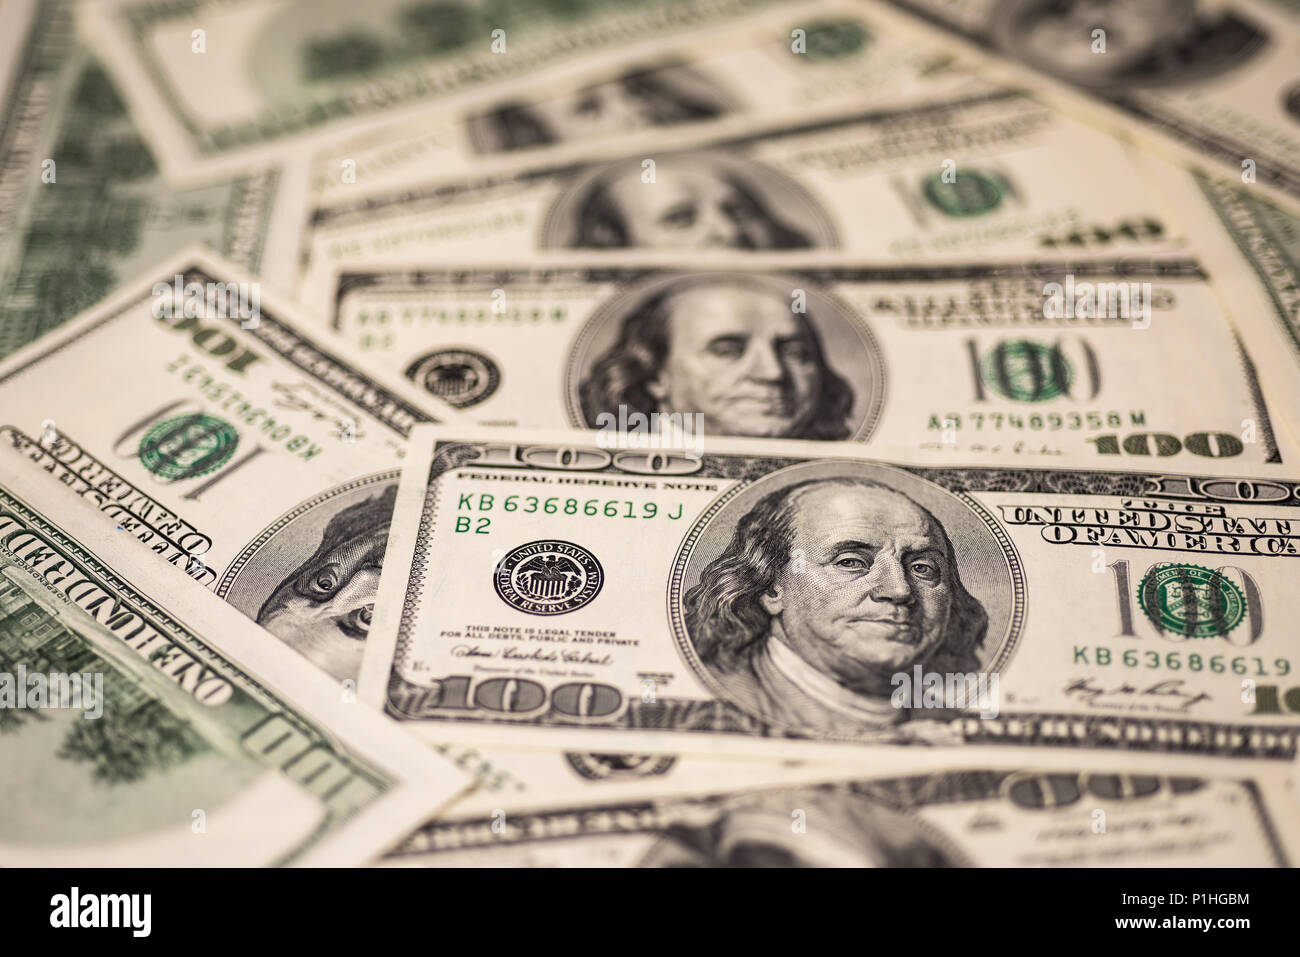 Background of one hundred dollar bills - Stock Image